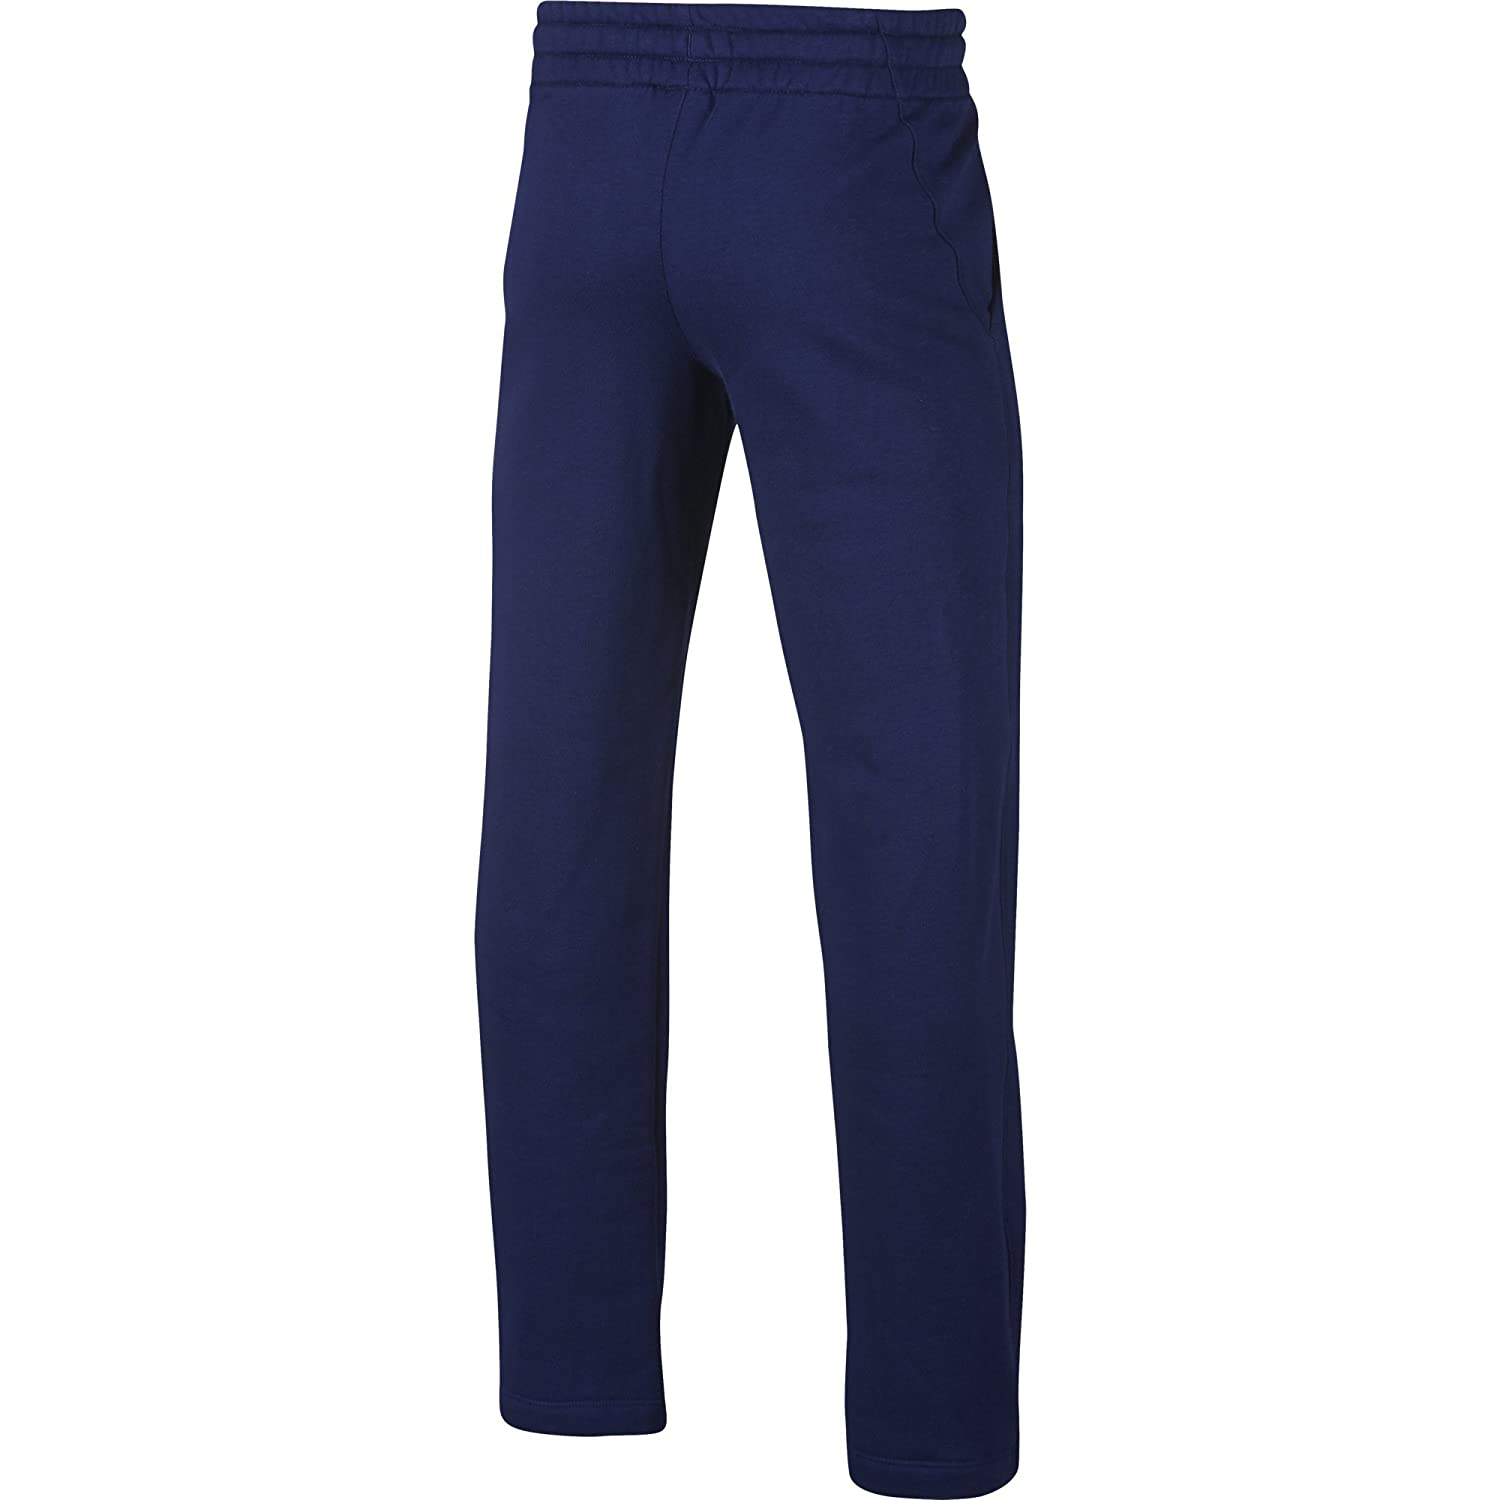 340df5f607 Amazon.com  NIKE Sportswear Boys  Club Fleece Open Hem Pants  Sports    Outdoors